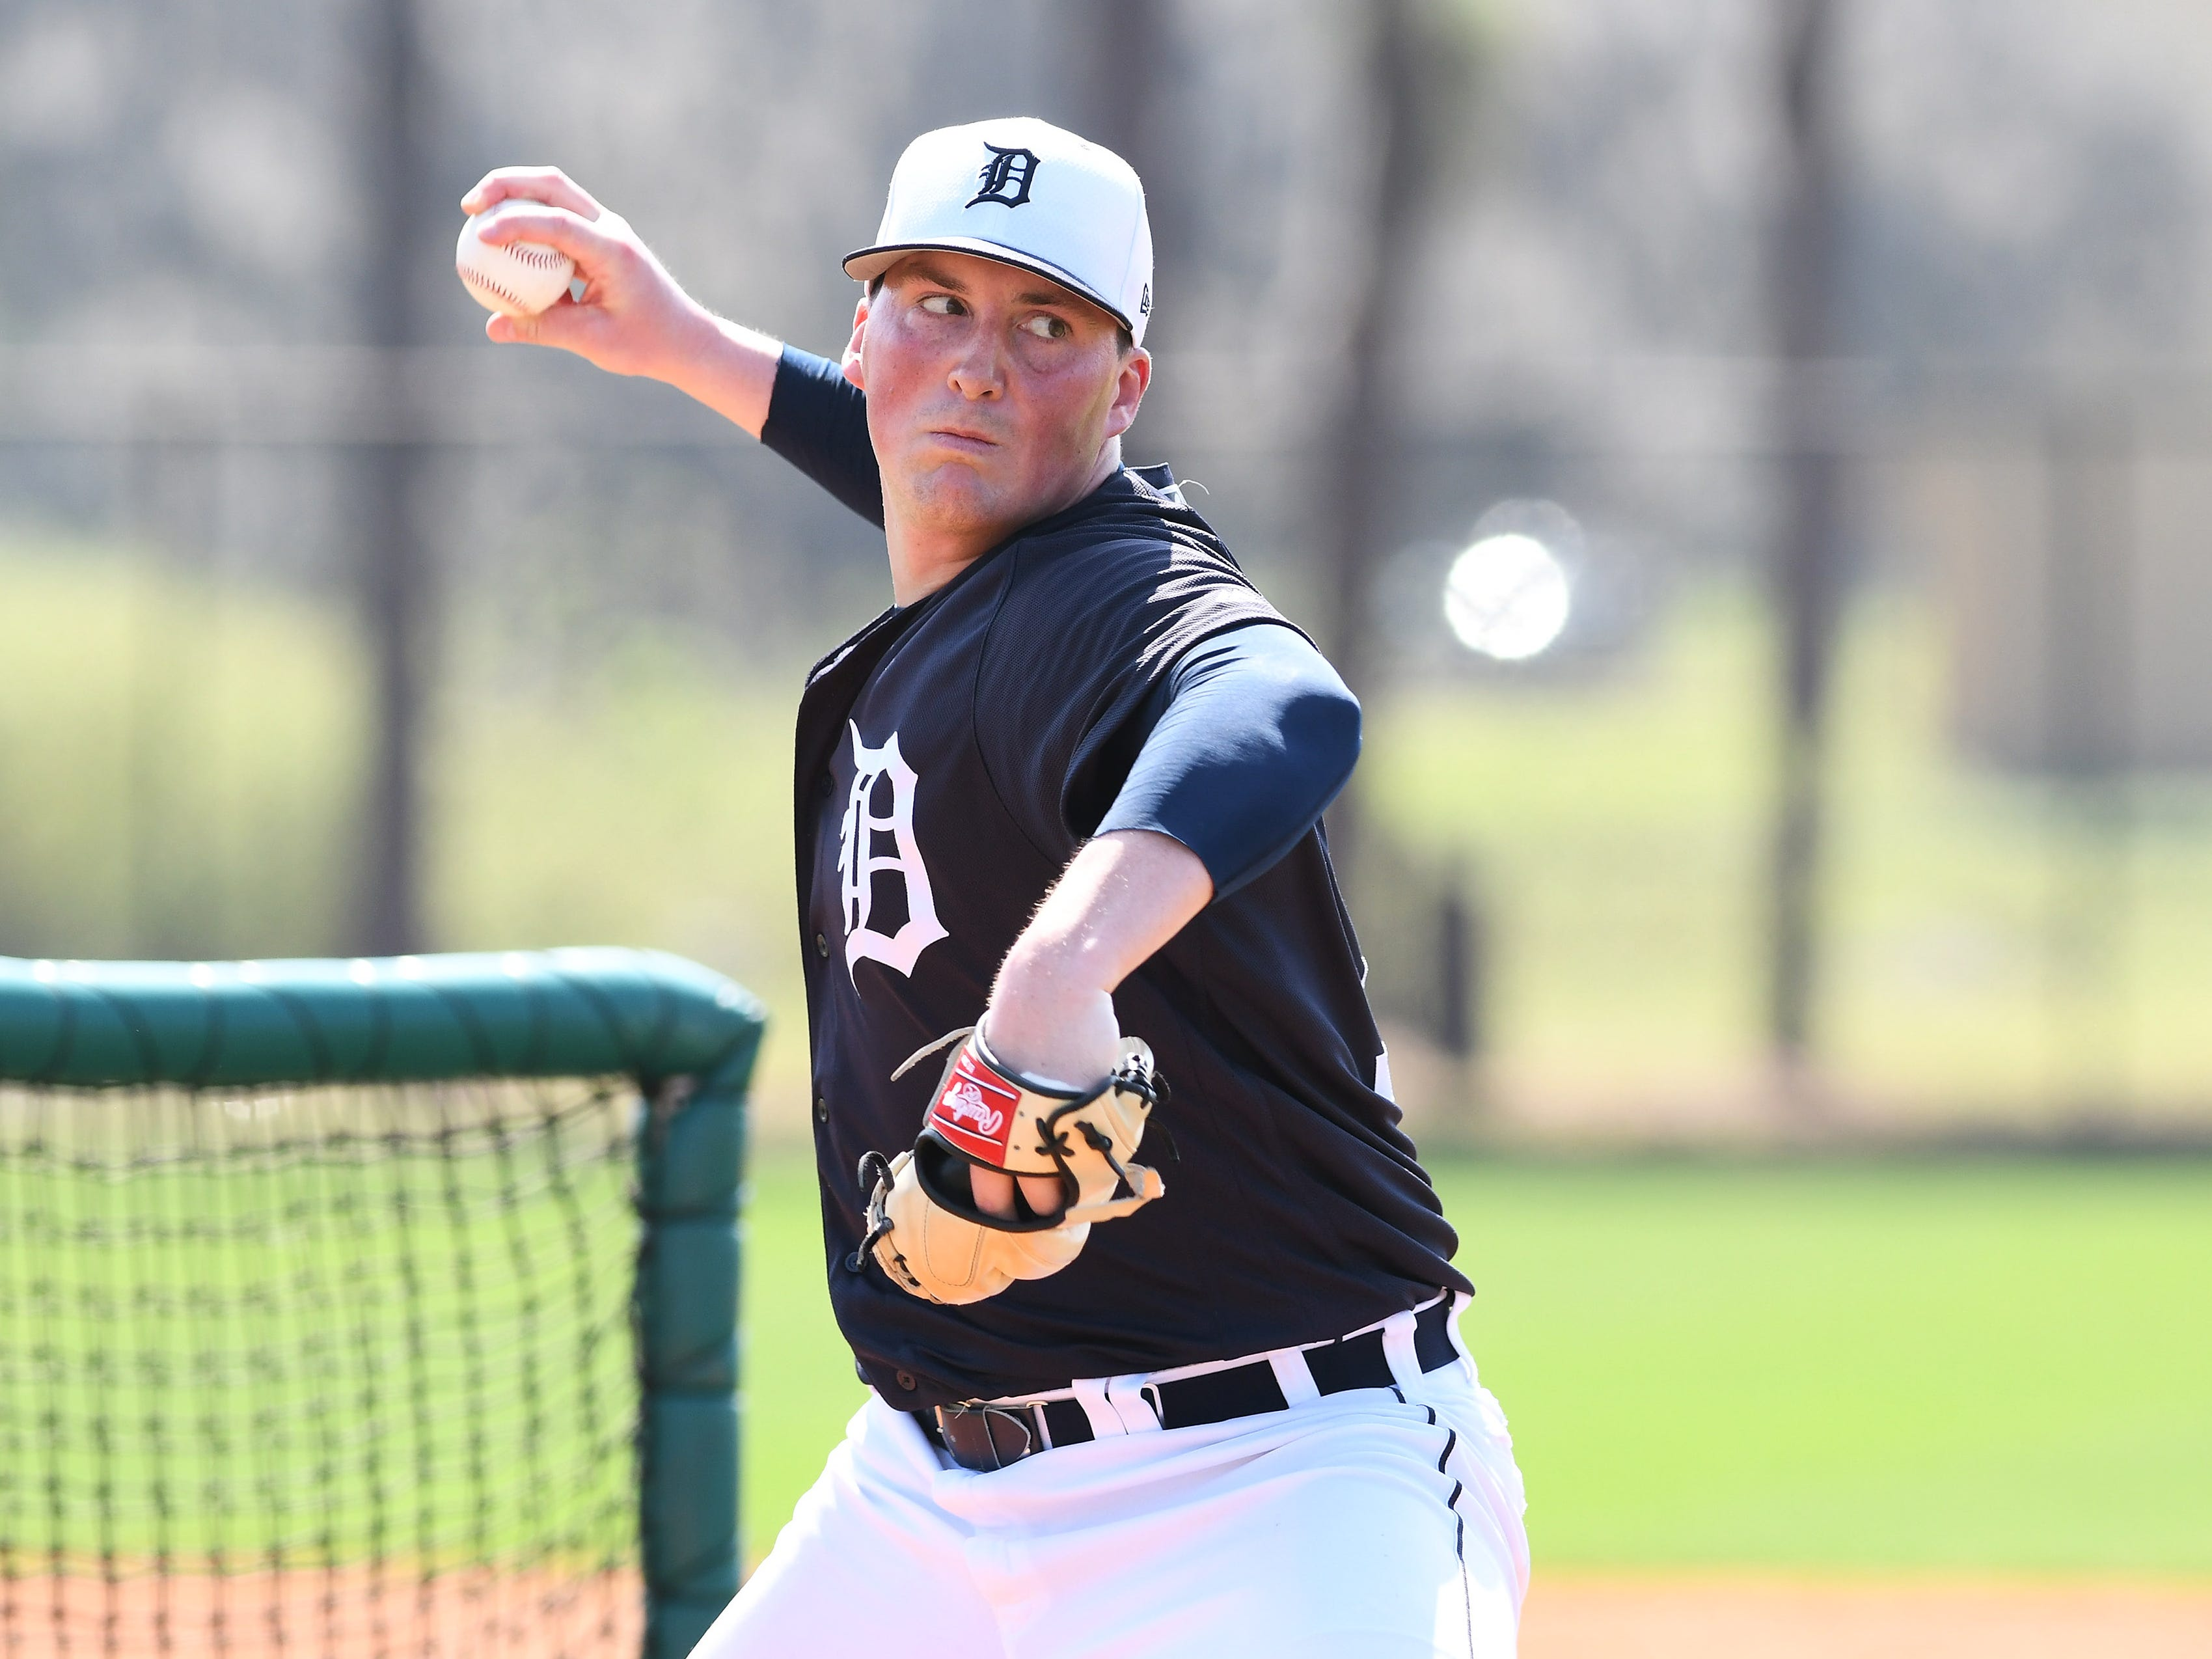 Tigers non-roster invitee Kyle Funkhouser pitches live batting practice.